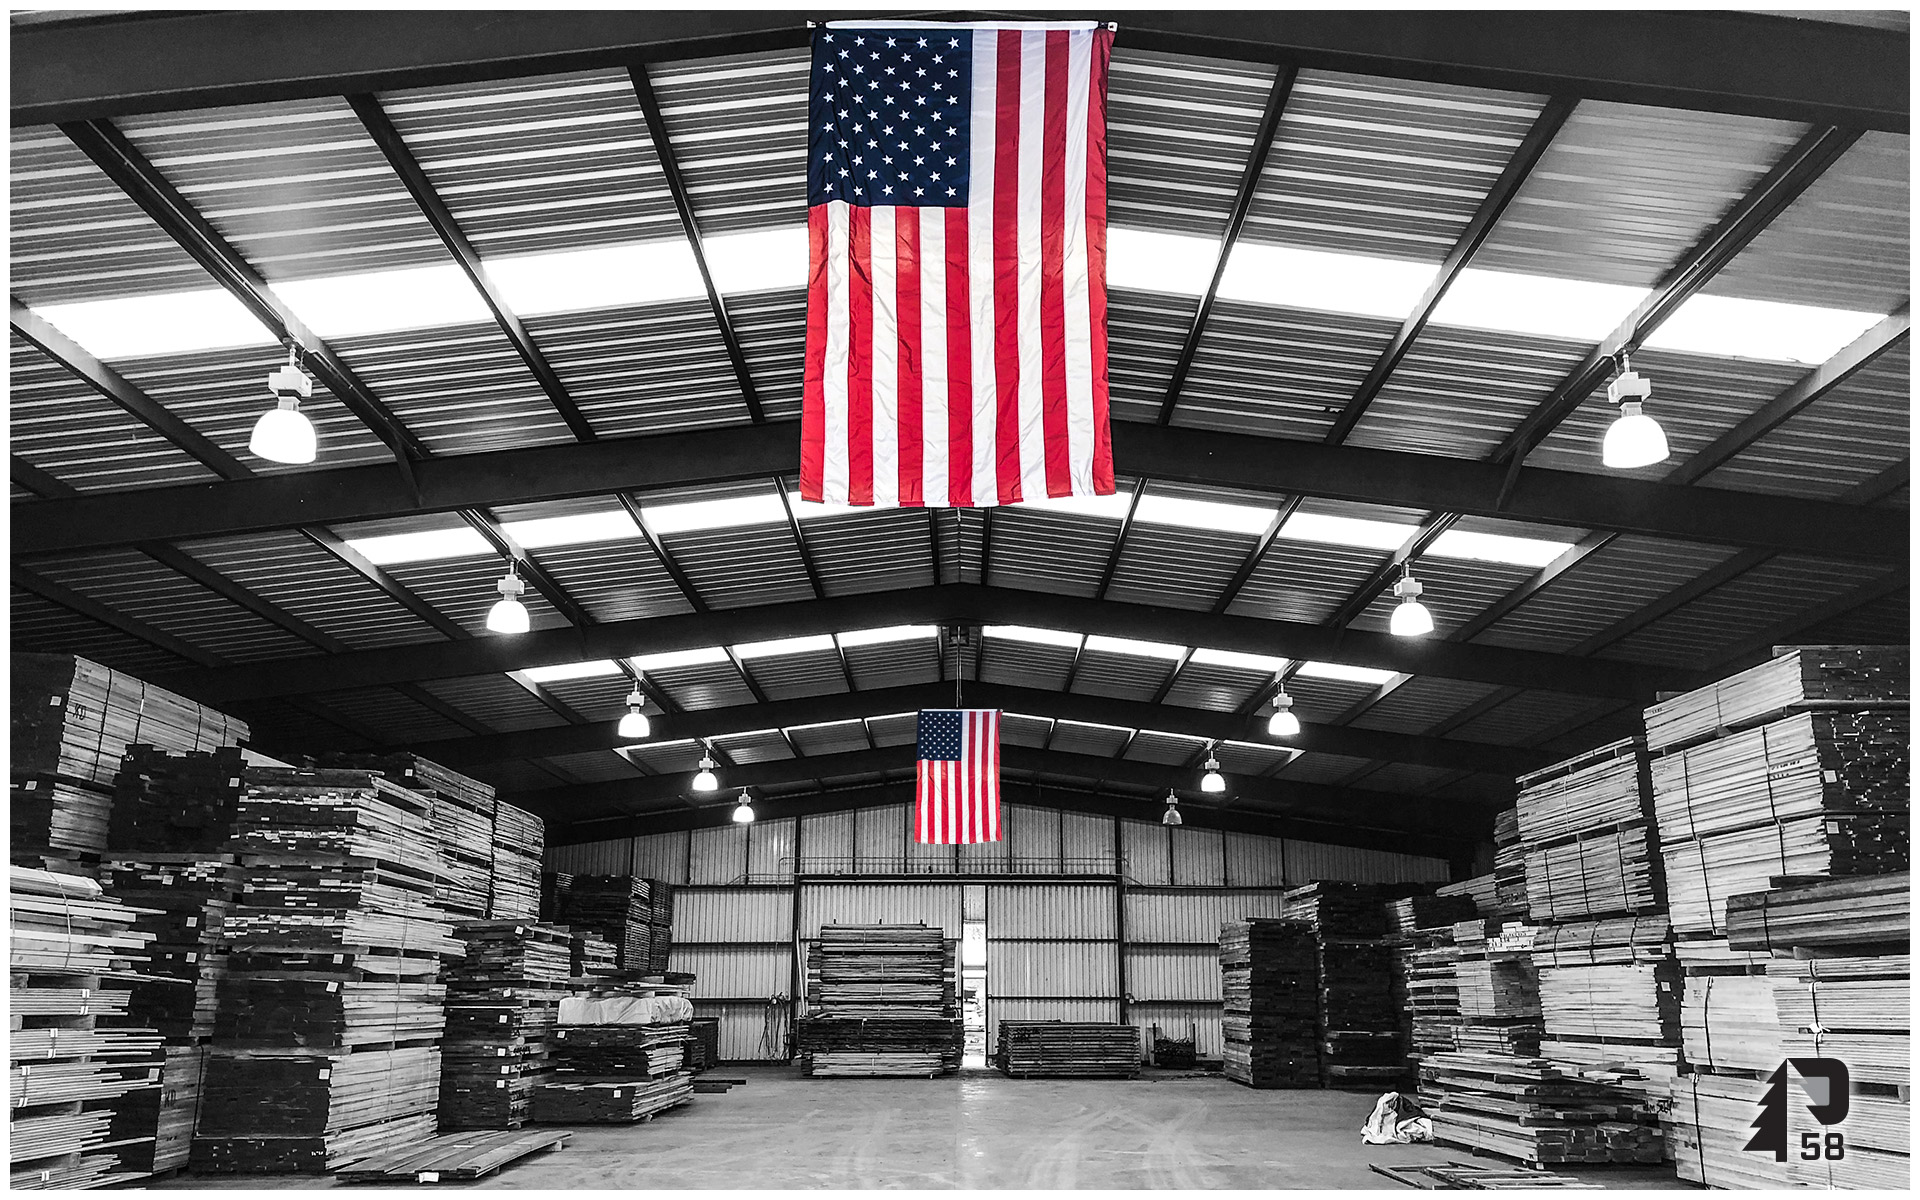 Kiln dried lumber in Texas with American Flags hanging.